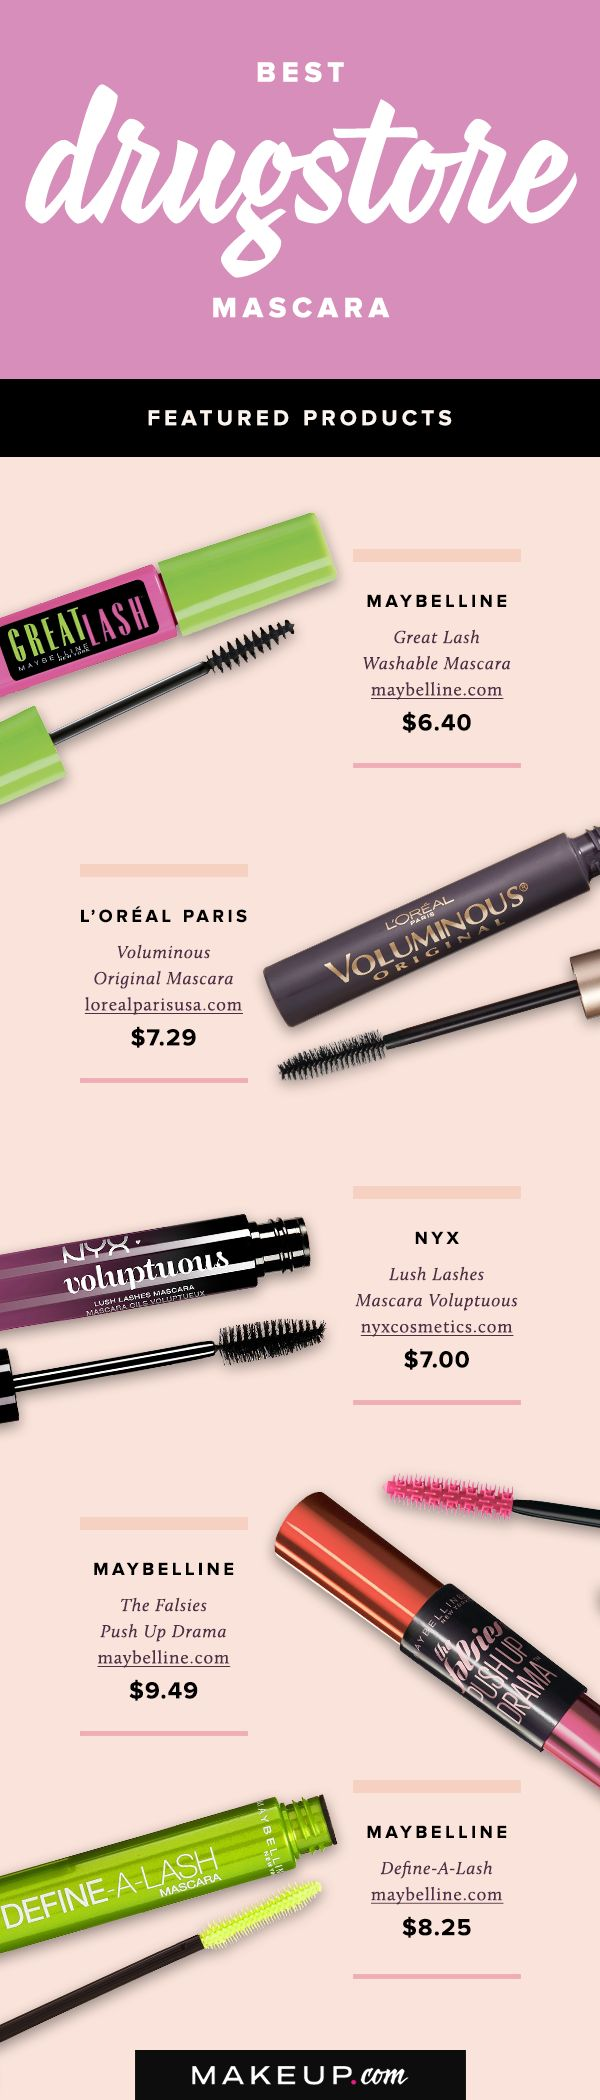 Luxury mascaras are great, but don't underestimate the power of a good drugstore mascara! From Maybelline to NYX, these are the best affordable drugstore mascaras that your lashes will love.